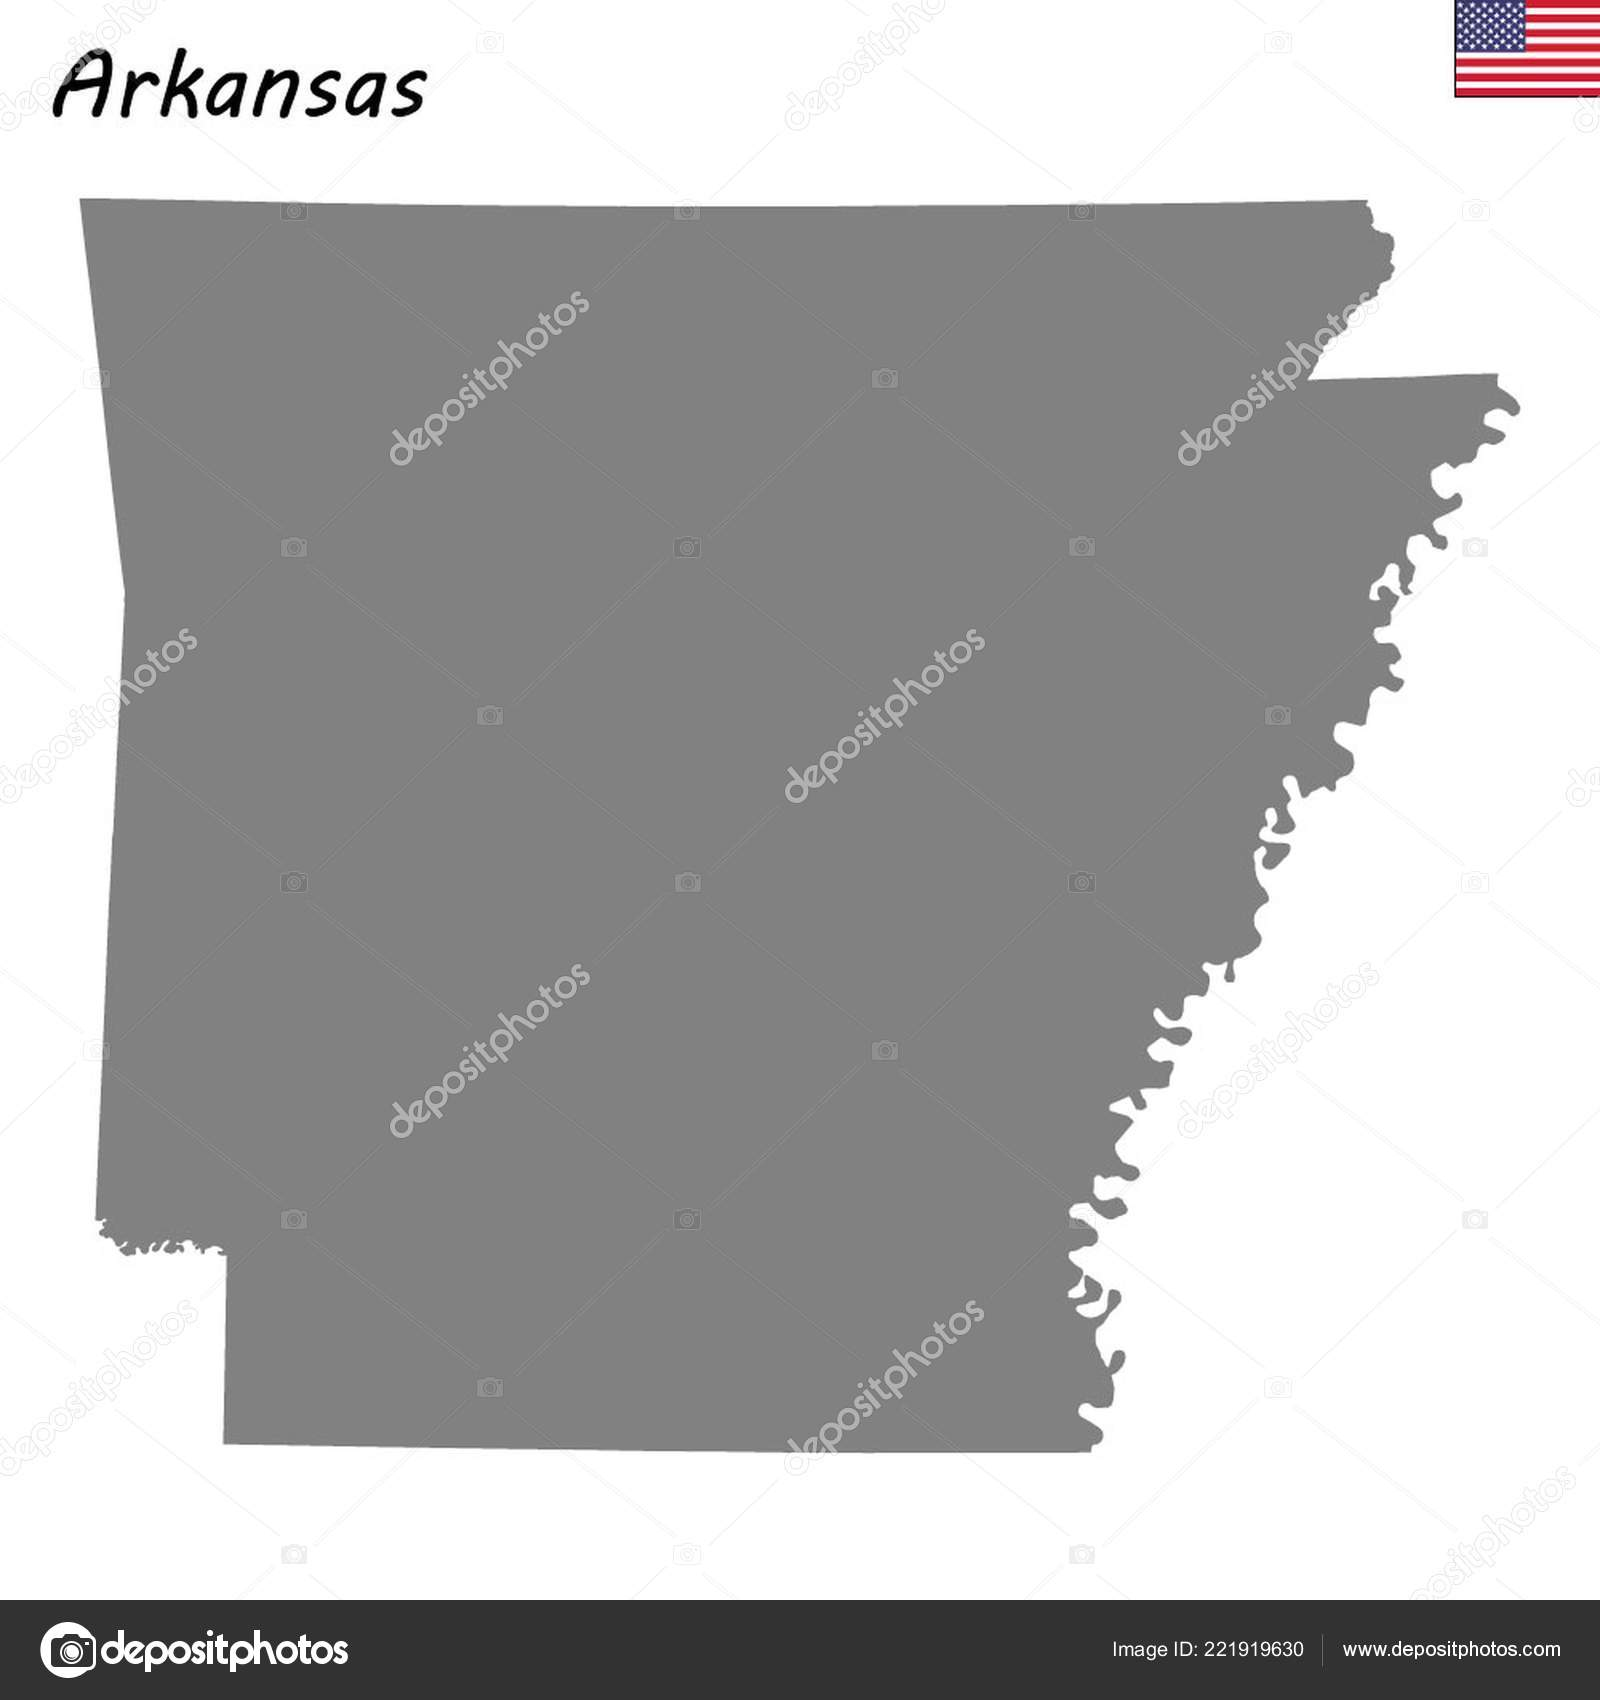 Arkansas United States Map.High Quality Map State United States Arkansas Stock Vector